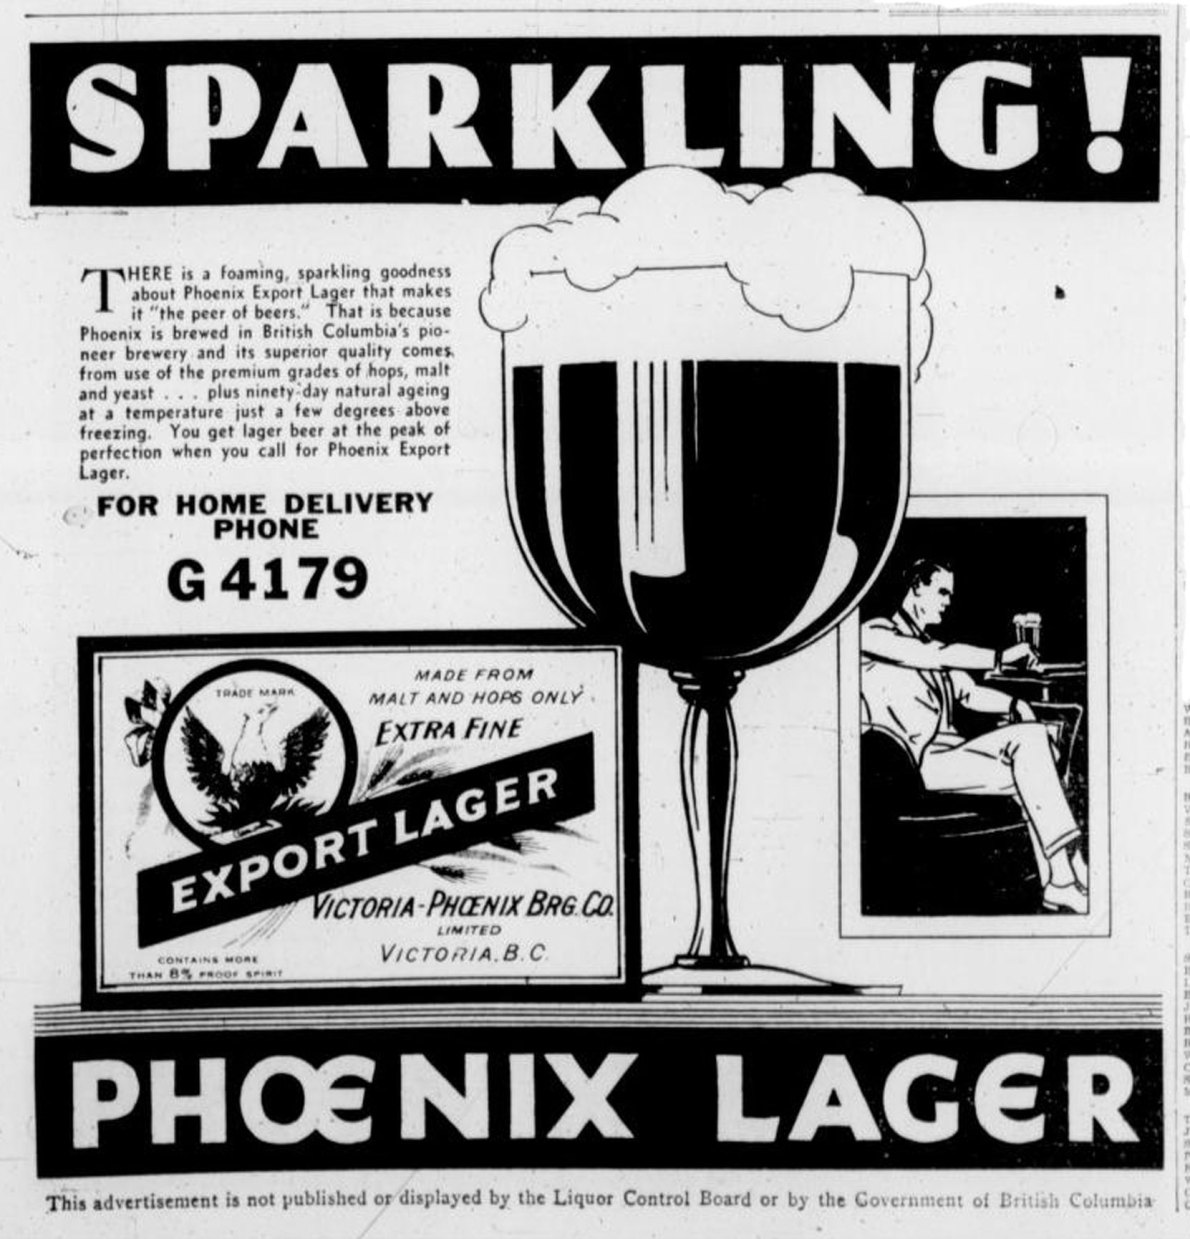 1939 advertisement for Phoenix Lager, brewed by the Victoria Phoenix brewing Company at 1921 Government Street (Victoria Online Sightseeing Tours collection)